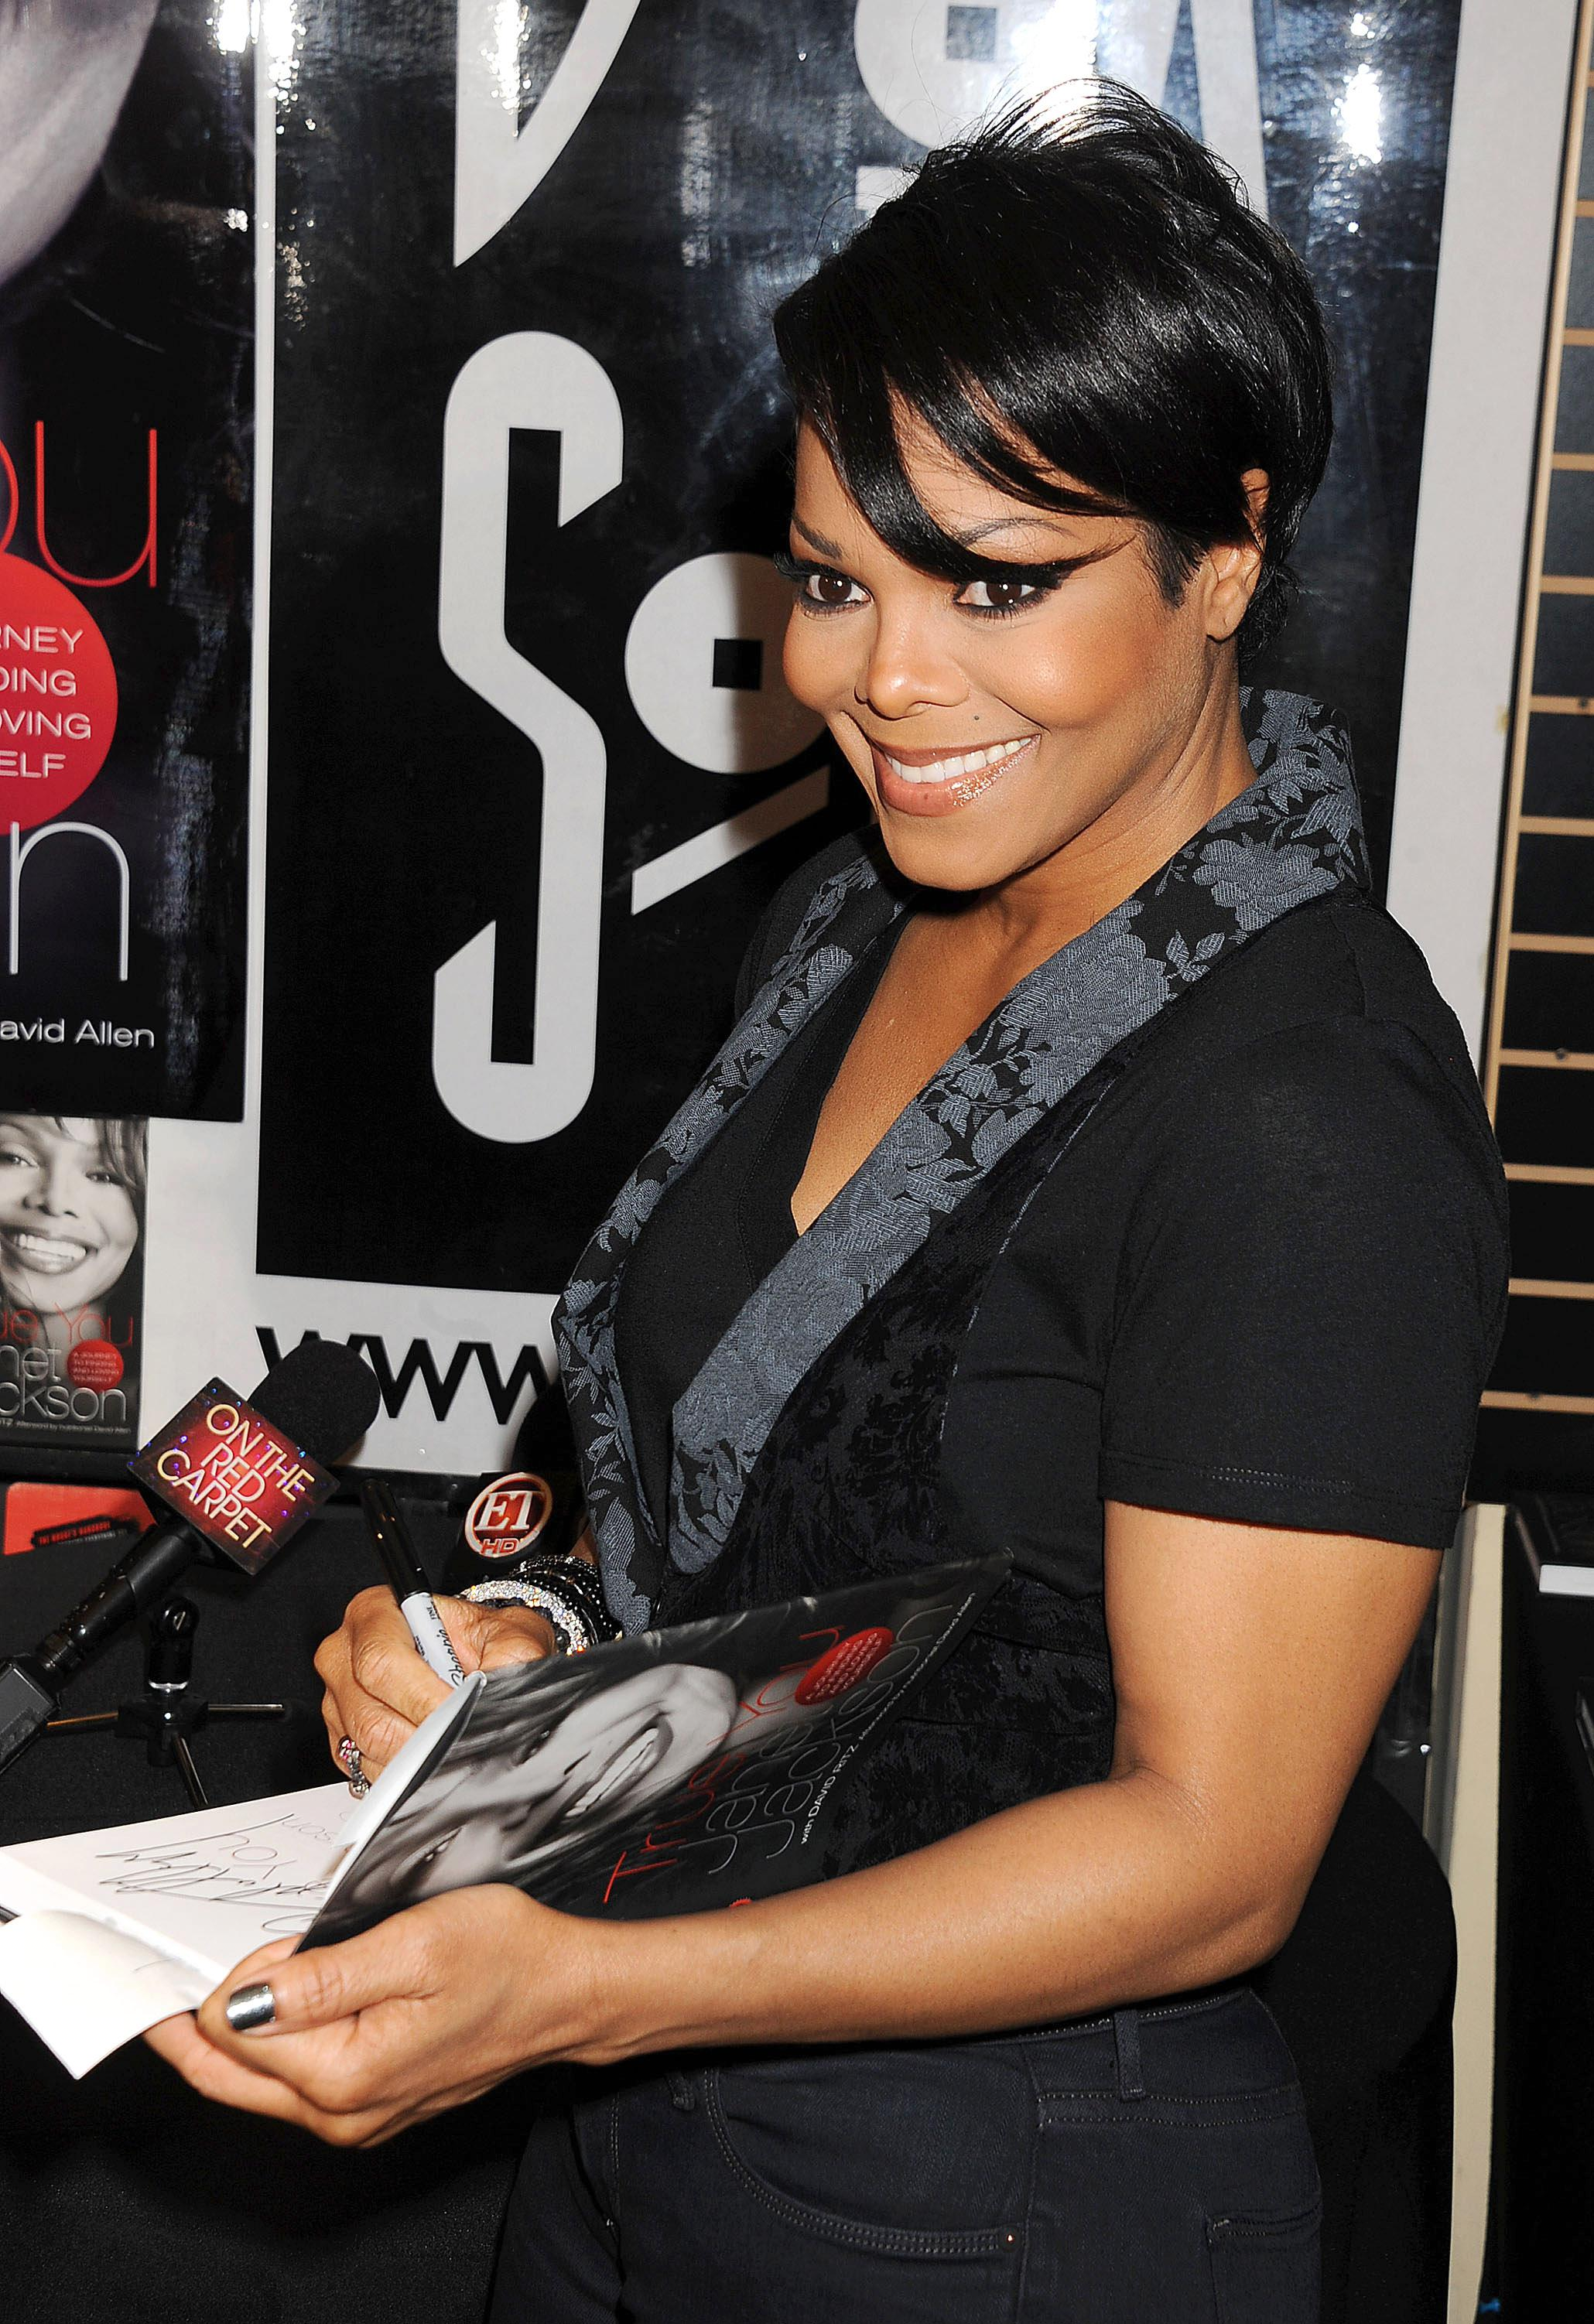 Janet Jackson Signs Copies Of Her New Book 'TRUE YOU: A Guide To Finding And Loving Yourself'